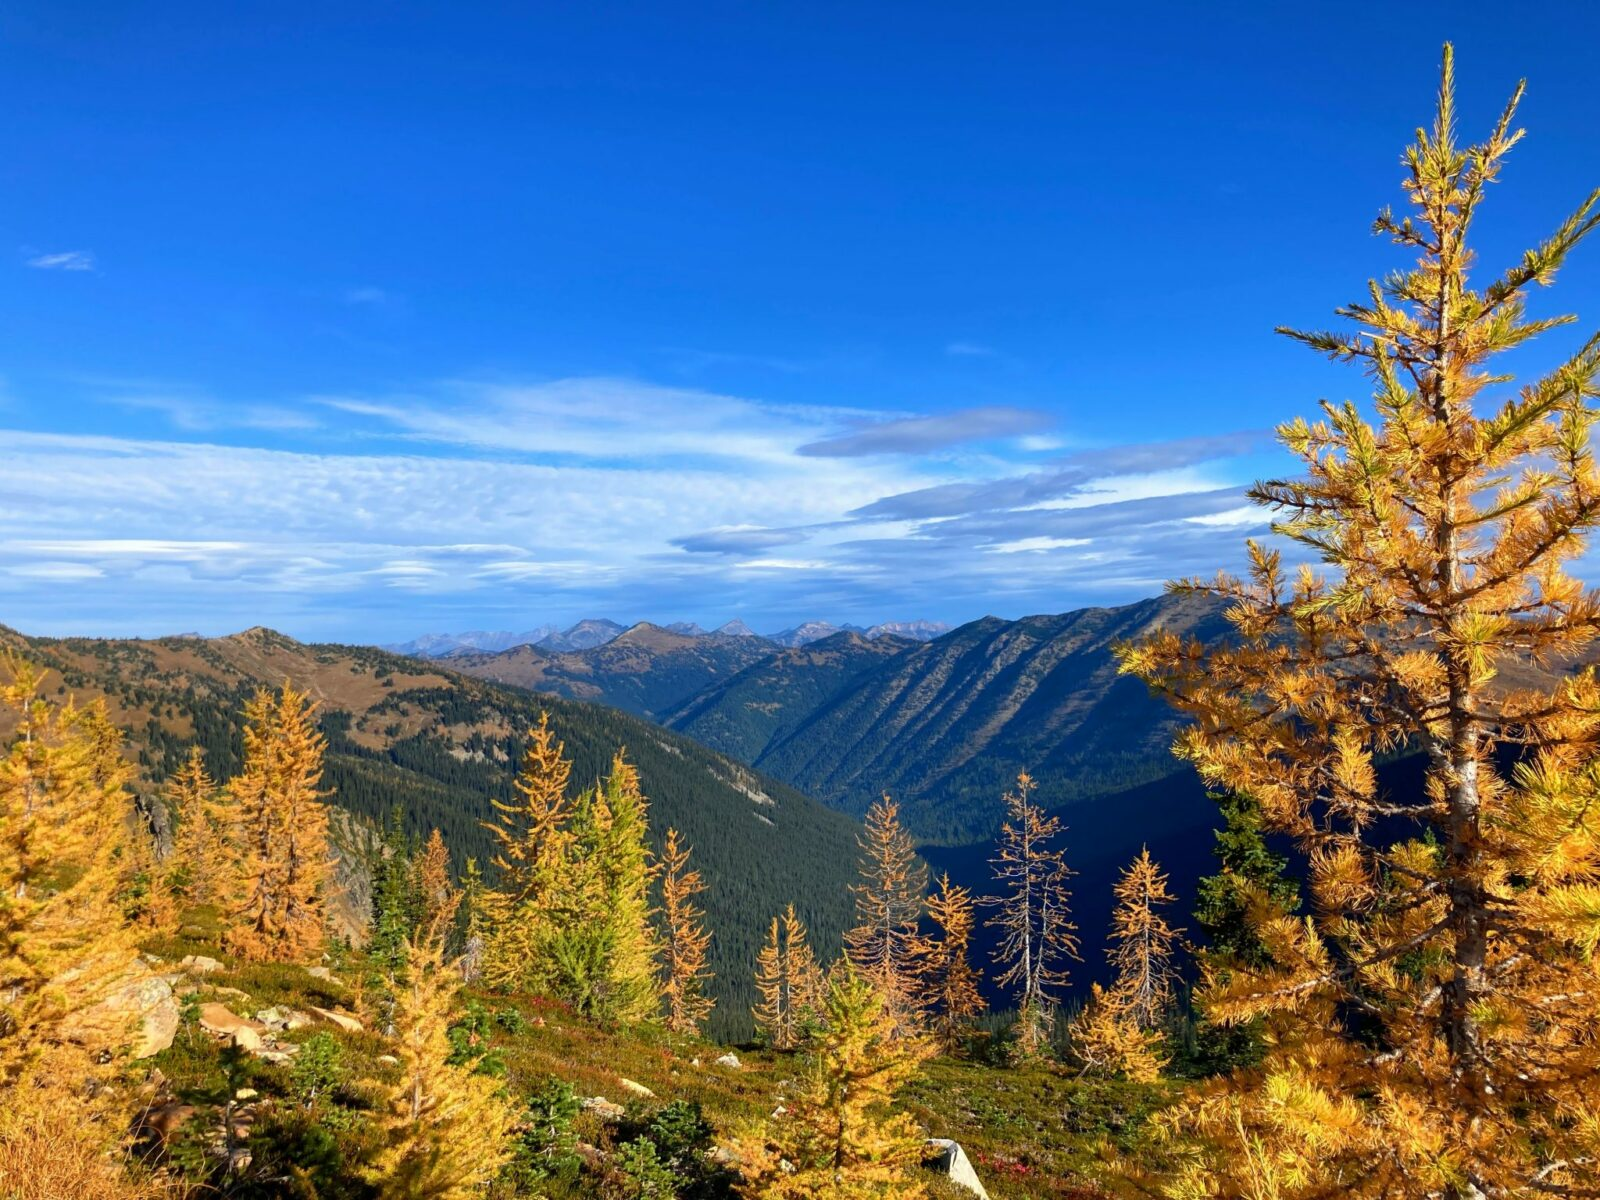 Golden larch trees in the foreground against a backdrop of distant mountains against a blue and partly cloudy sky